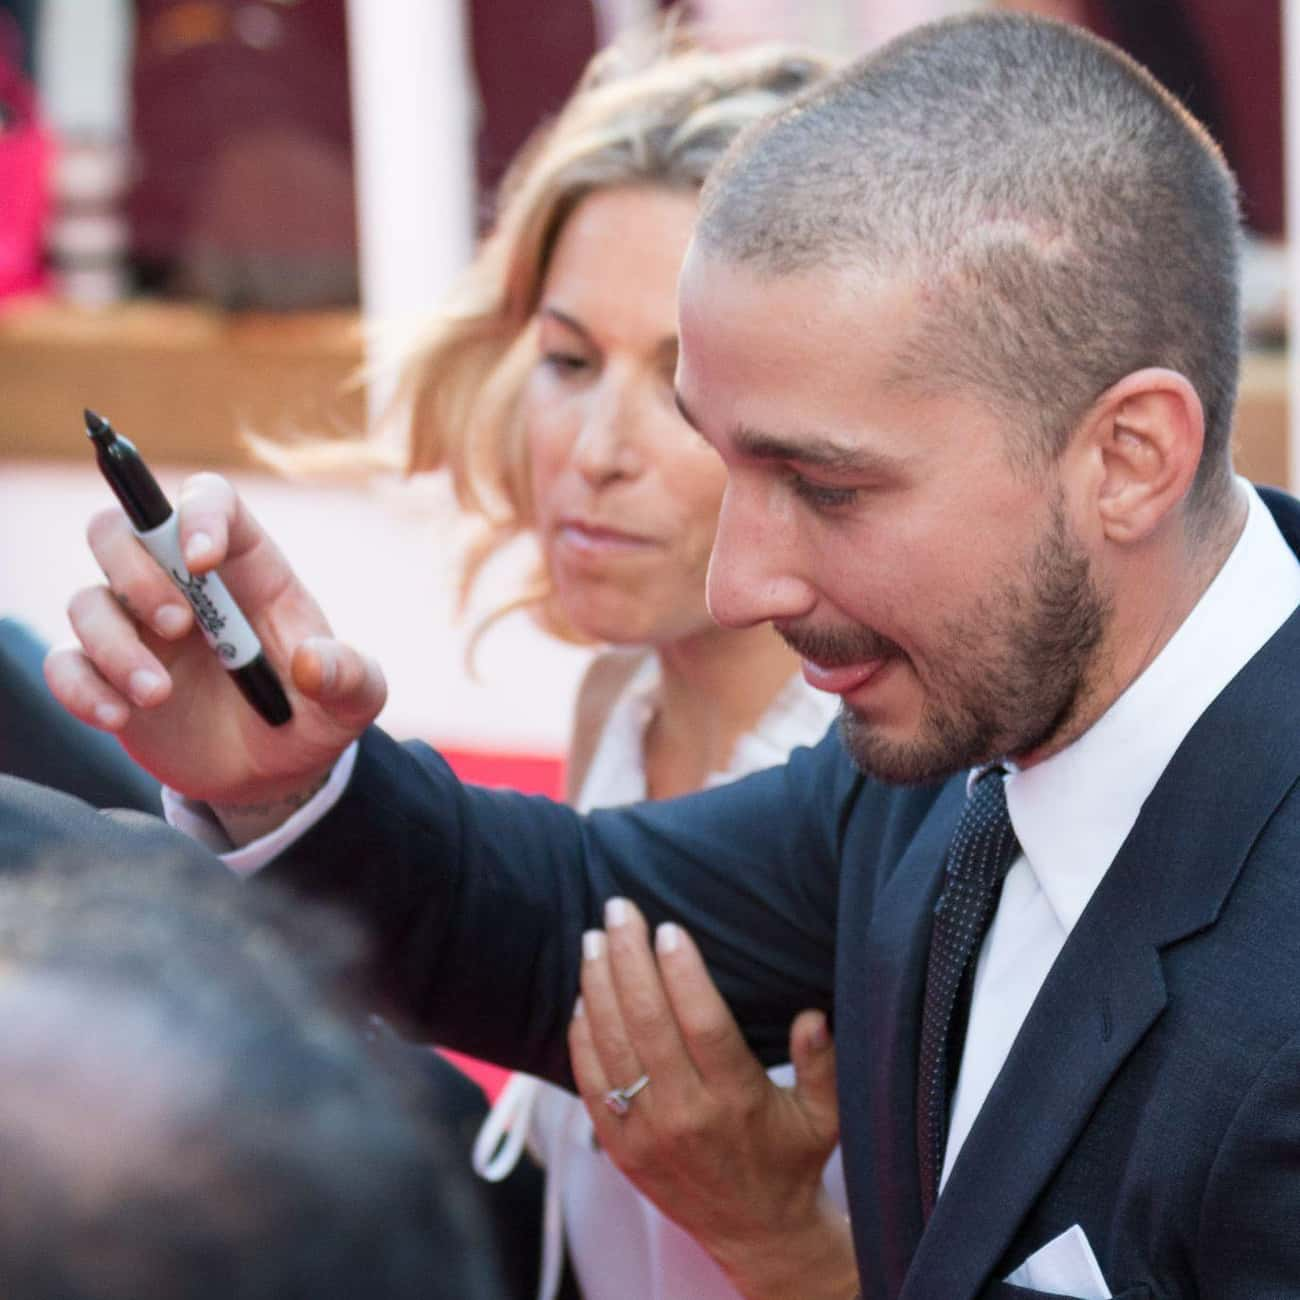 Threatens to Have Restaurant P is listed (or ranked) 3 on the list The Most Shia LaBeouf Things Shia LaBeouf Has Done